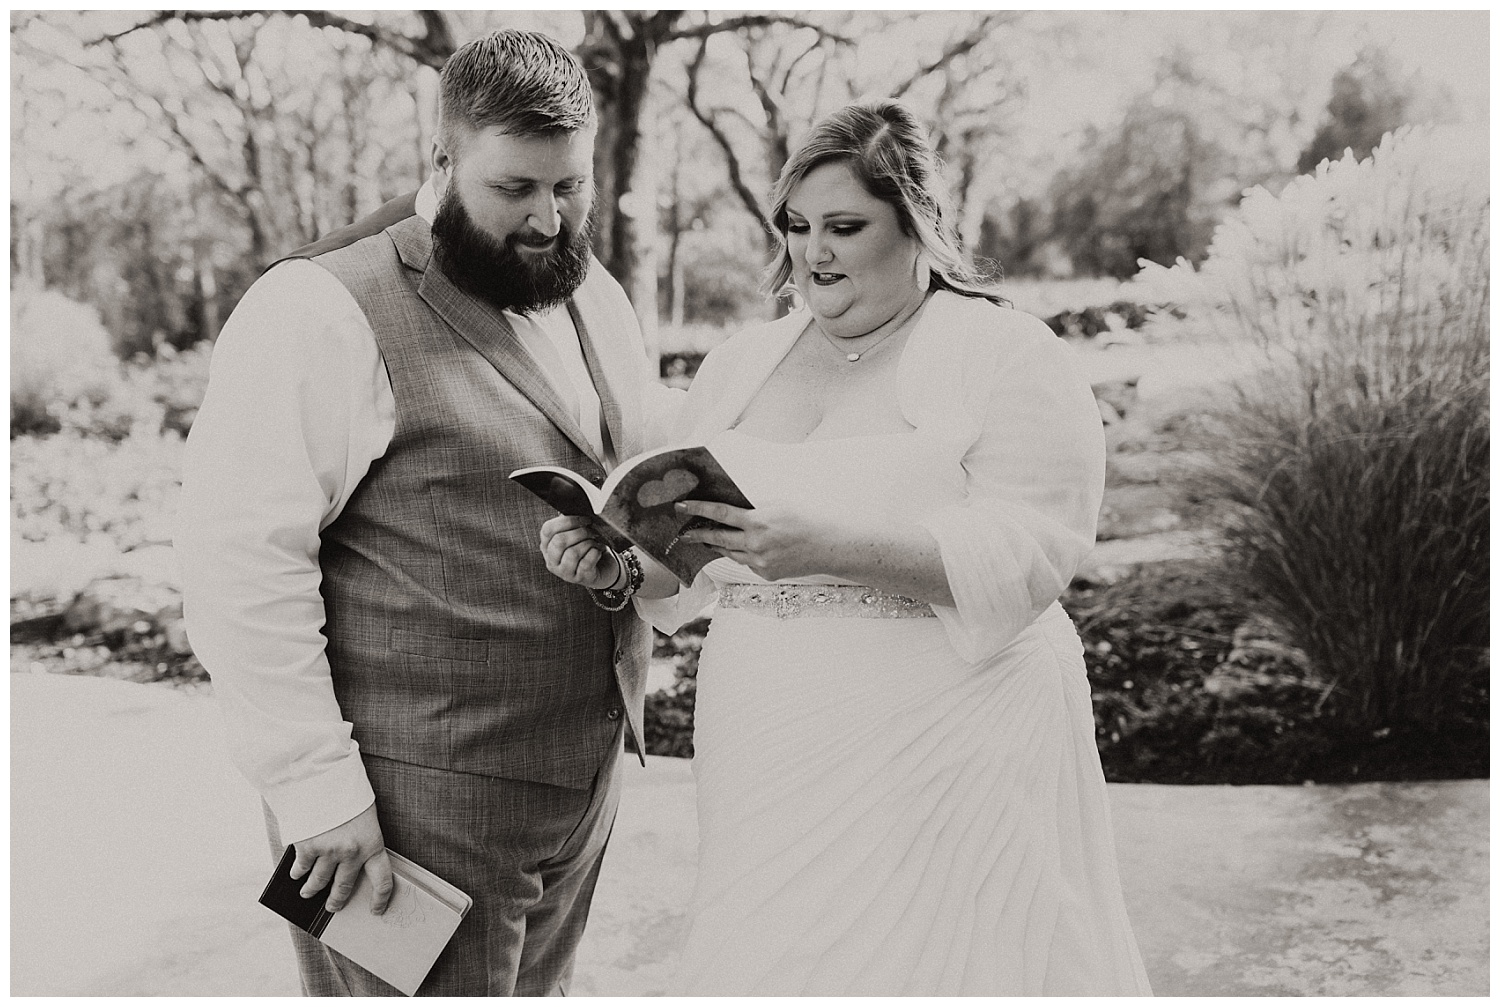 Bride and Groom gift exchange at the springs in Blanchard, Oklahoma.